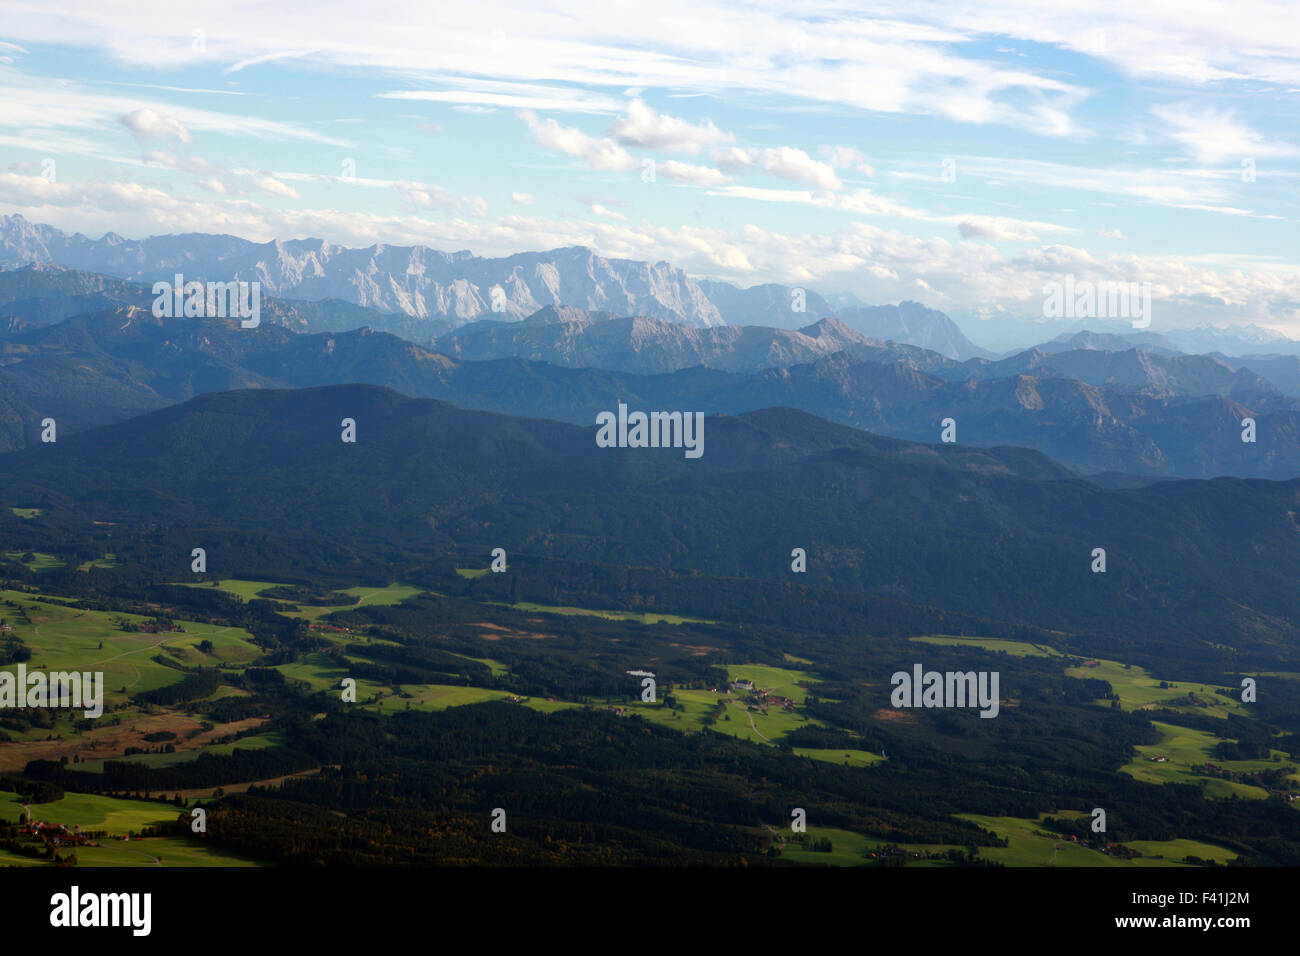 View from Allgäu to the Alps - Stock Image